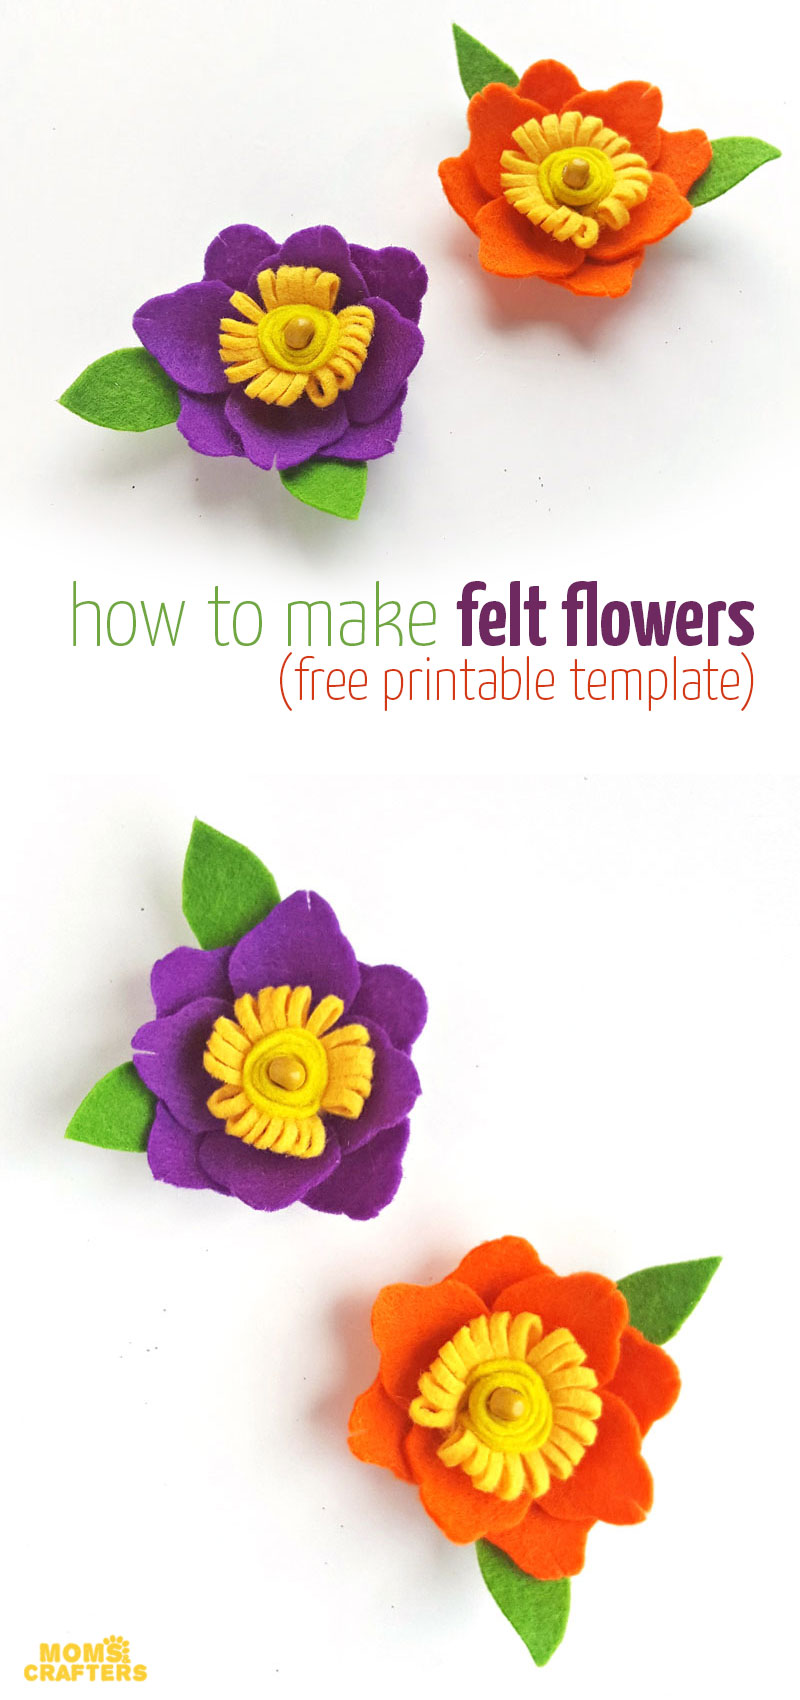 Free printable template to make DIY felt flowers - perfect for girls accessories such as DIY hair clips and barettes! This fun spring craft for teens and tweens is really simple to craft.